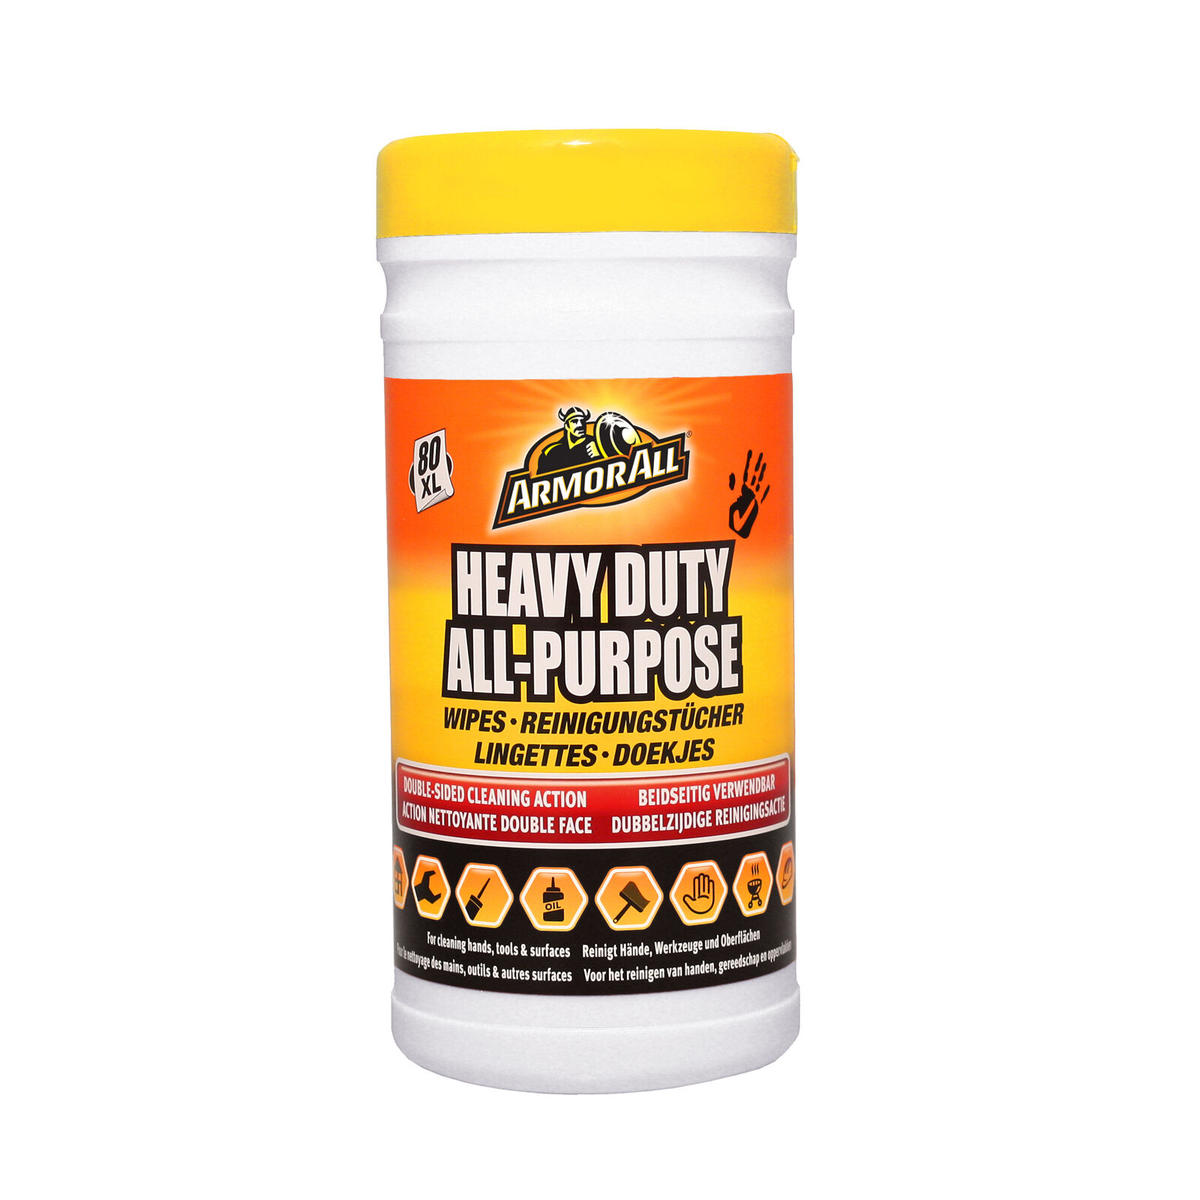 Armorall 80 Heavy Duty All Purpose Home Garage Wipes Removes Grease Oil Paint